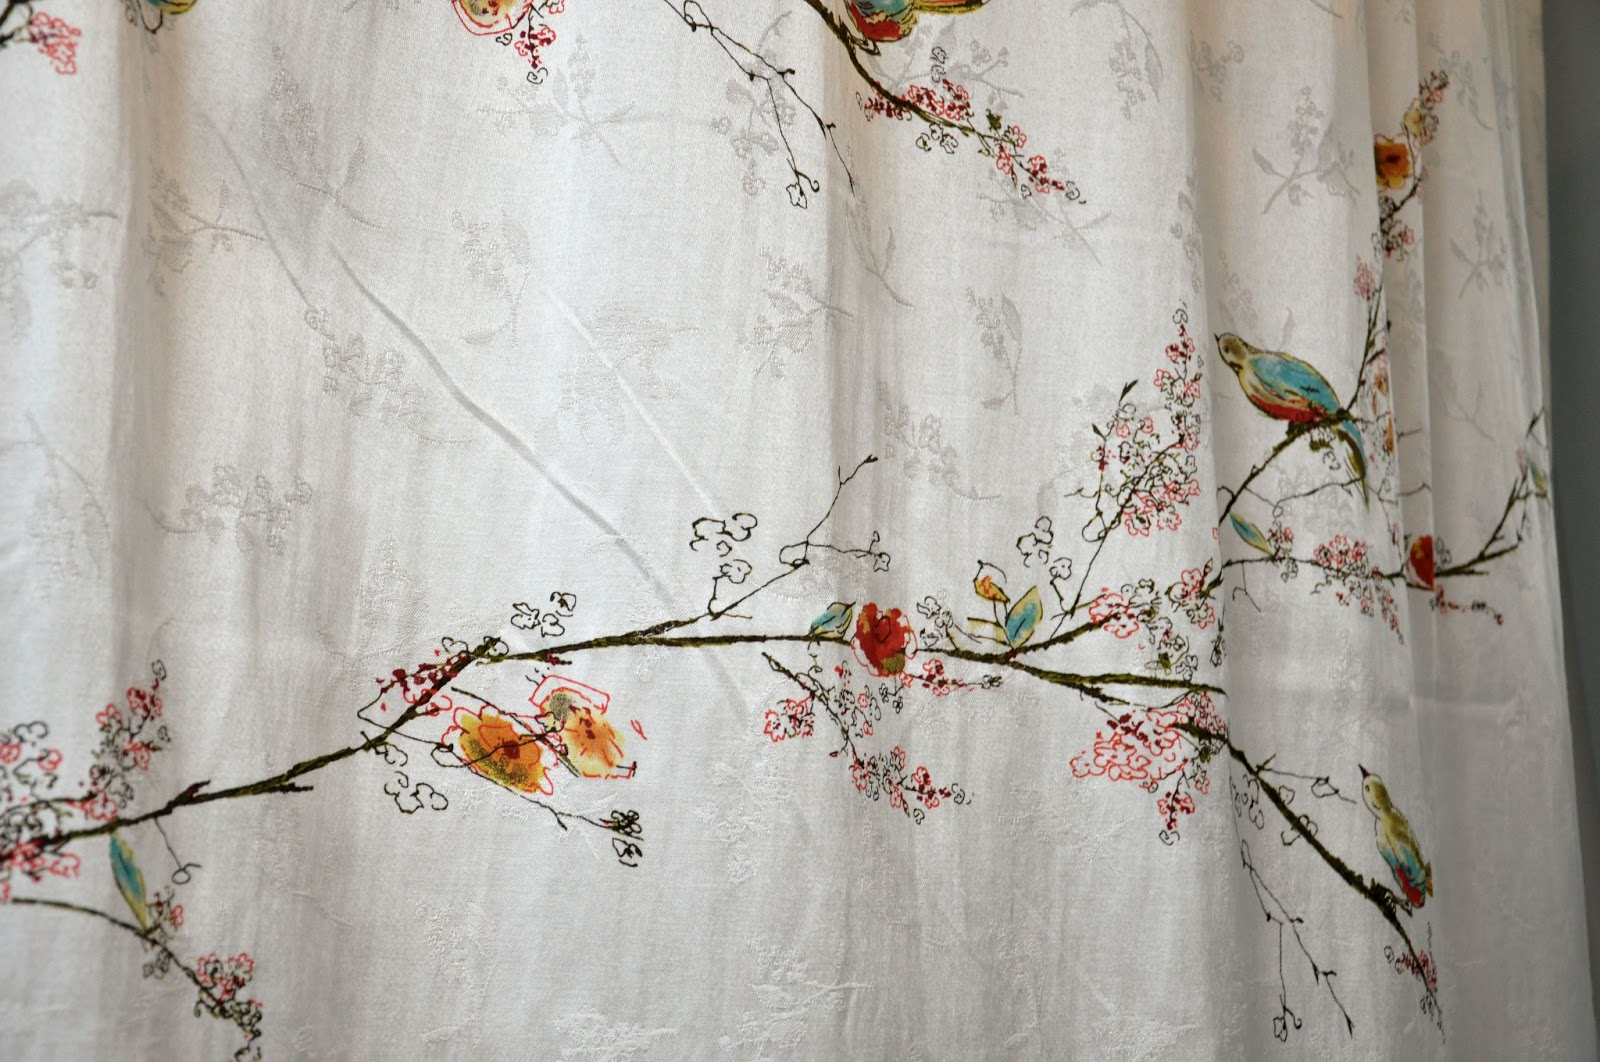 The Quality Of The Curtain And The Hooks Has Me Very Impressed. I Liked The  Pattern So Much, I Tried Talking My Husband Into The Matching China  Setu2026needless ...